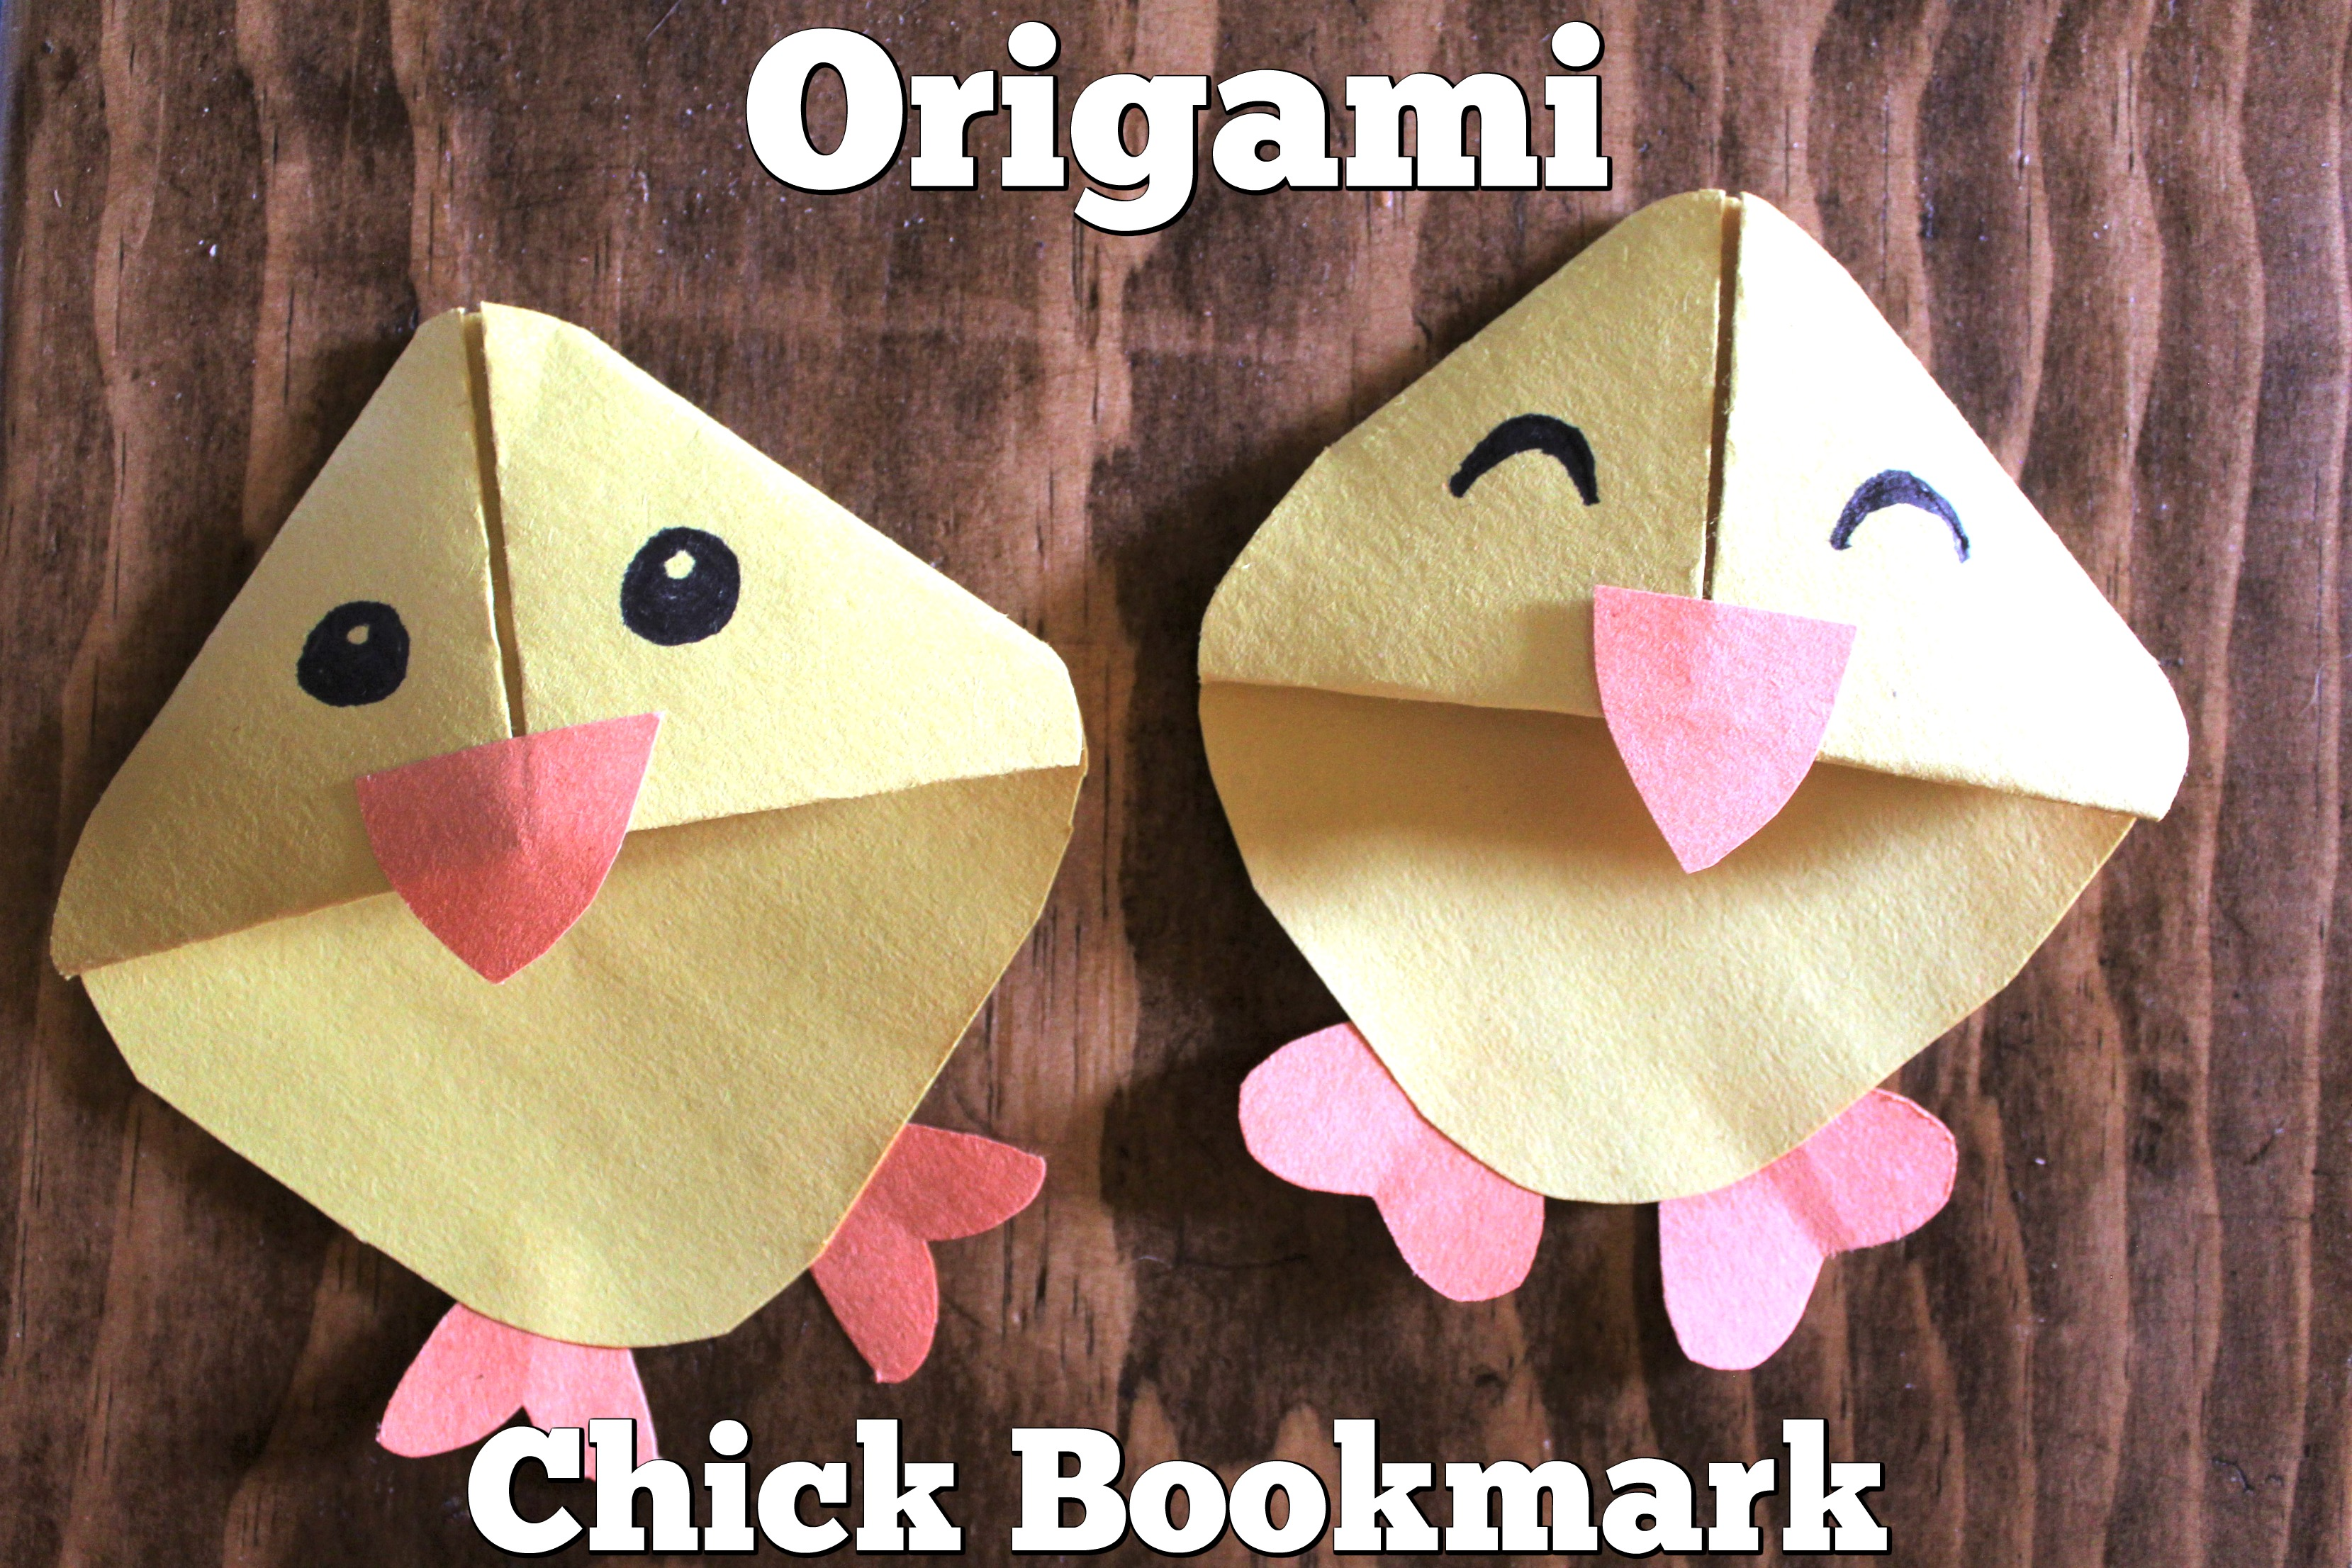 Origami Chick Bookmark